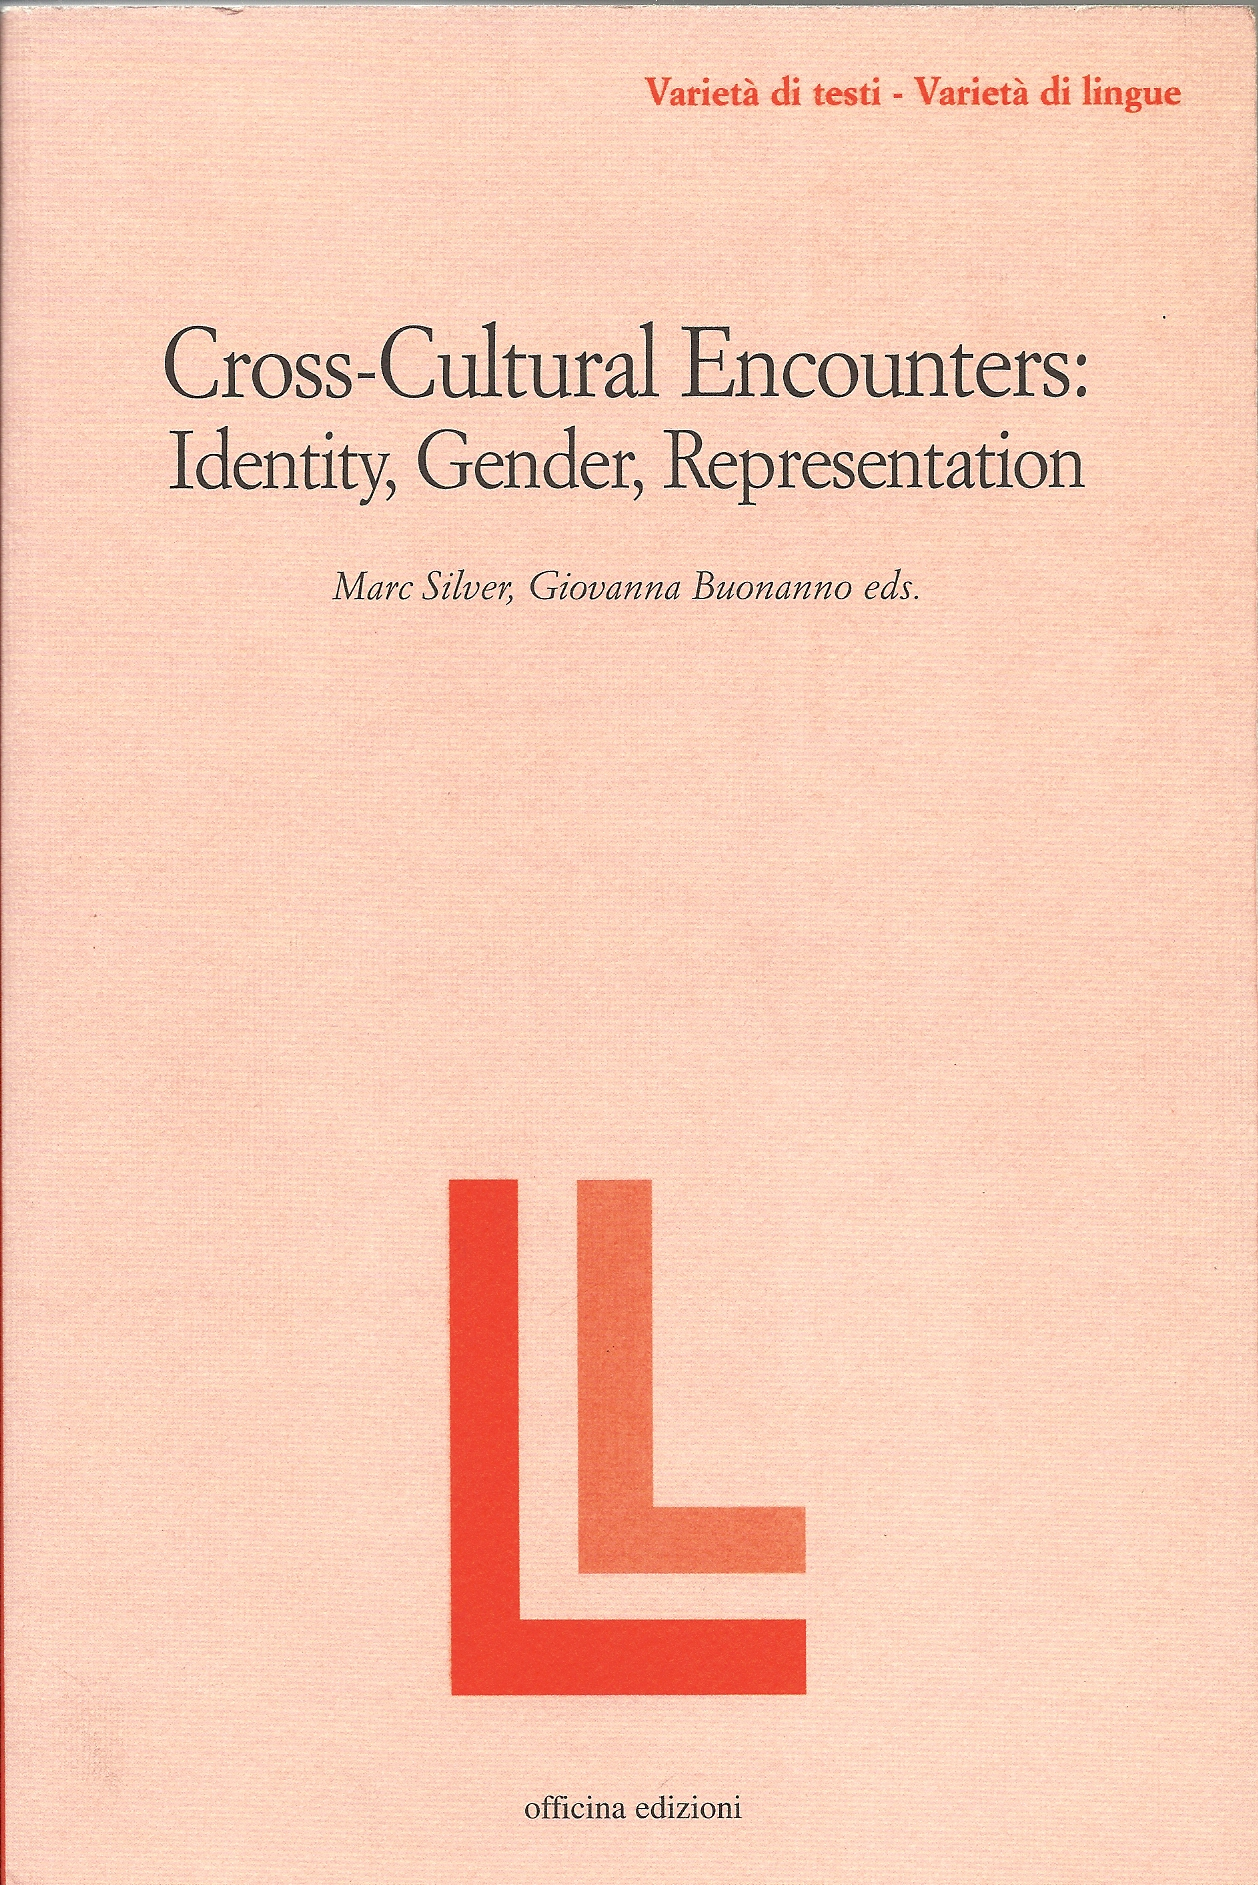 cross cultural encounters Posts about cross-cultural encounters written by hakluyt society.